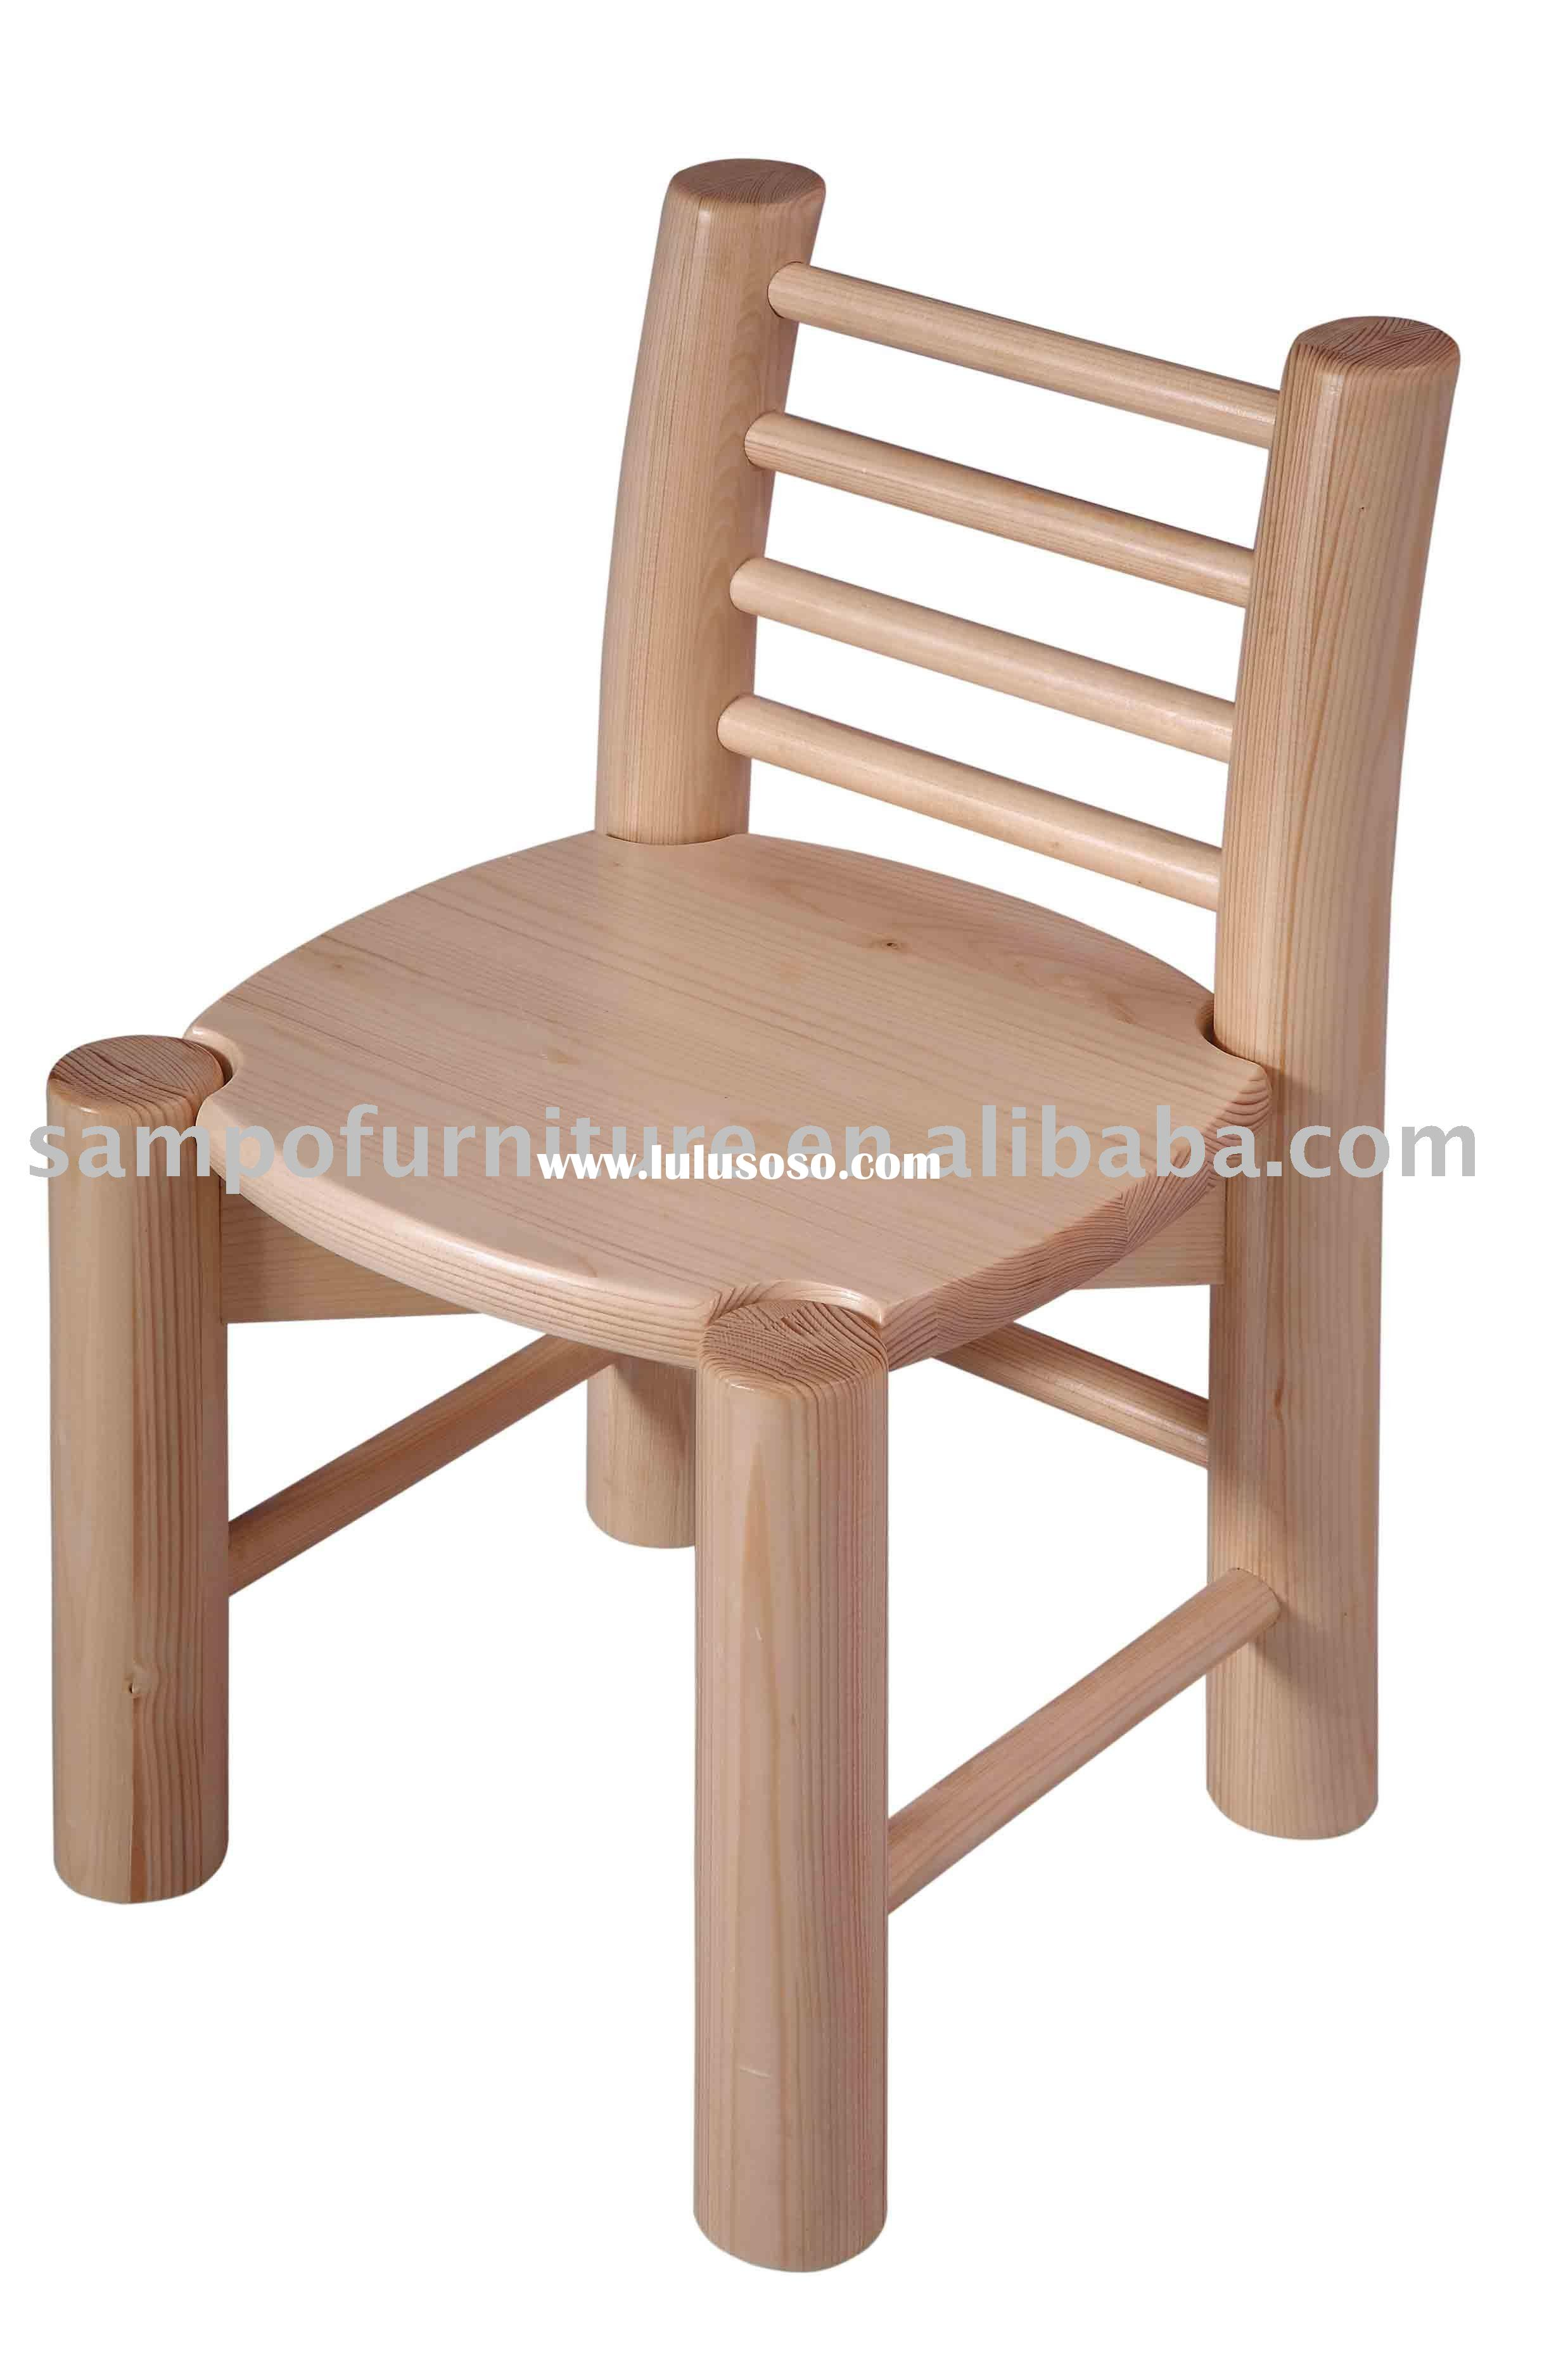 Small Chair For Sale Small Wooden Child Chair For Sale Price China